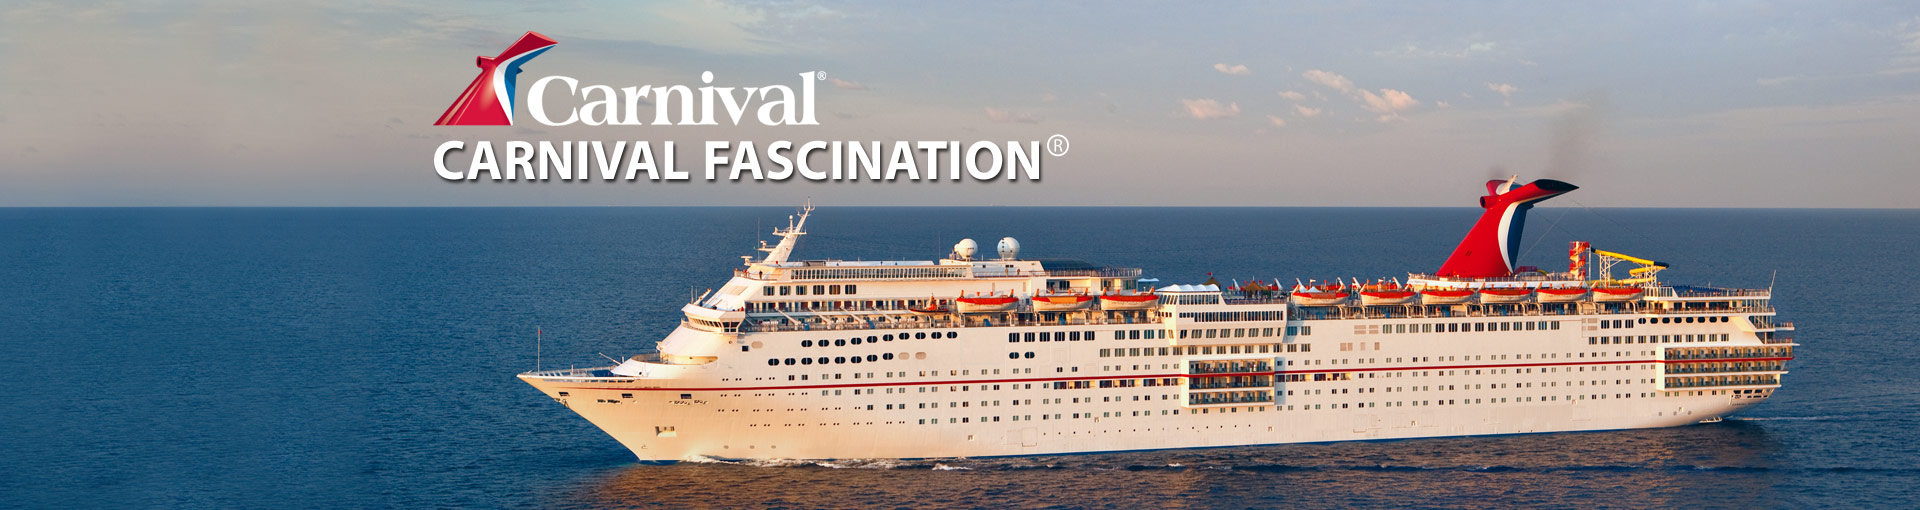 Carnival Fascination Cruise Ship And Carnival - Cape canaveral cruise ship schedule